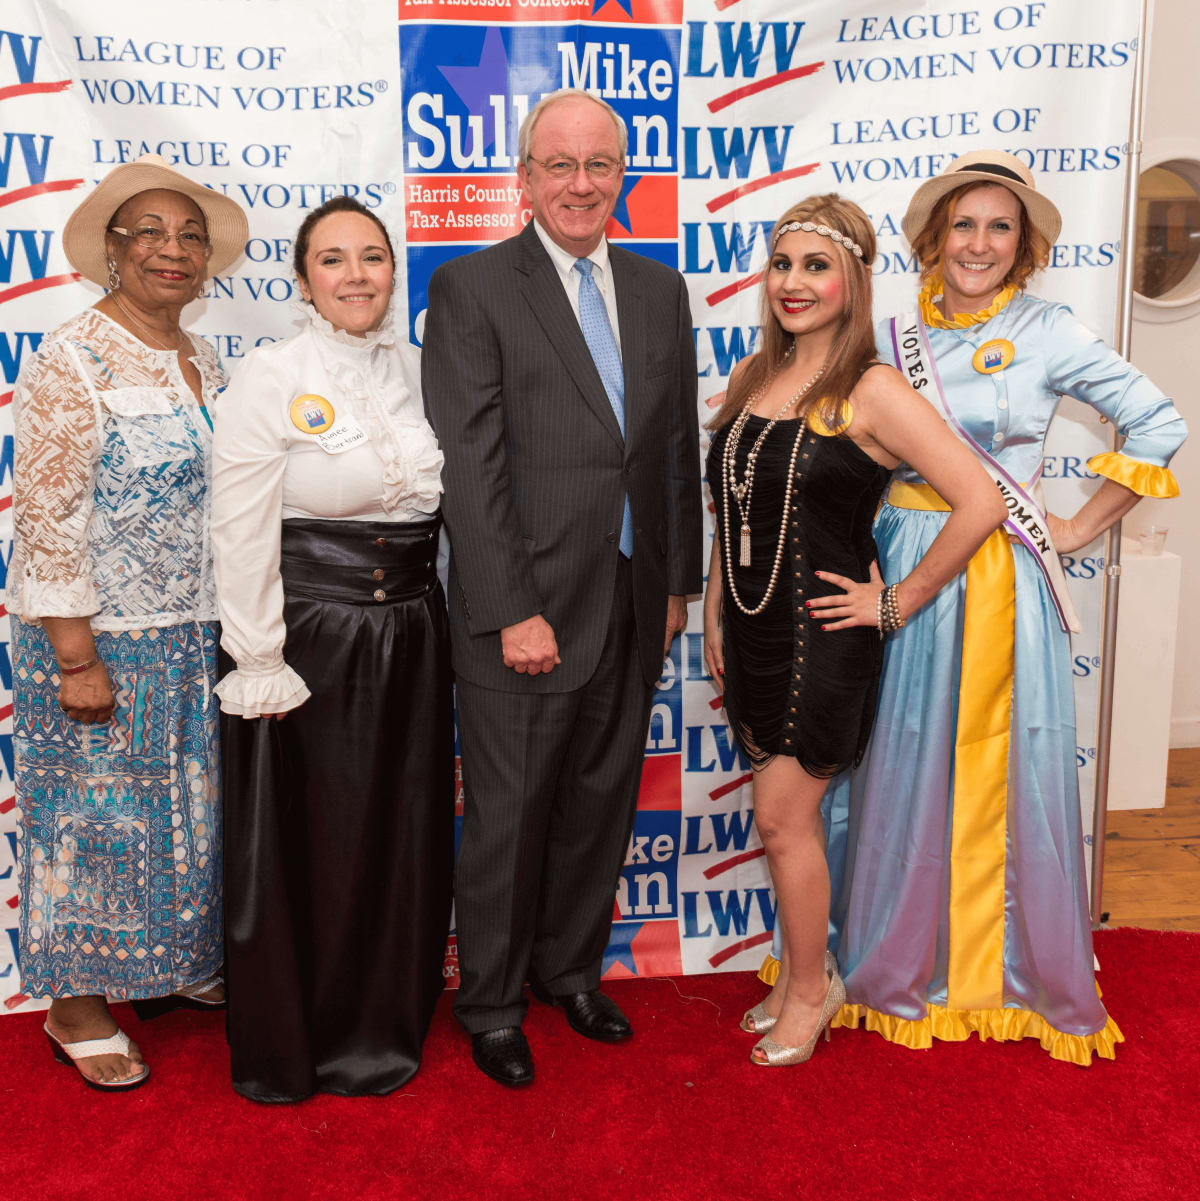 Houston's Women's Equality Day Celebration, Harris County Tax Assessor-Collector and Voter Registrar Mike Sullivan, flanked by Event Co Chairs Aimee Bertrand and Parisa Moayedi and event attendees